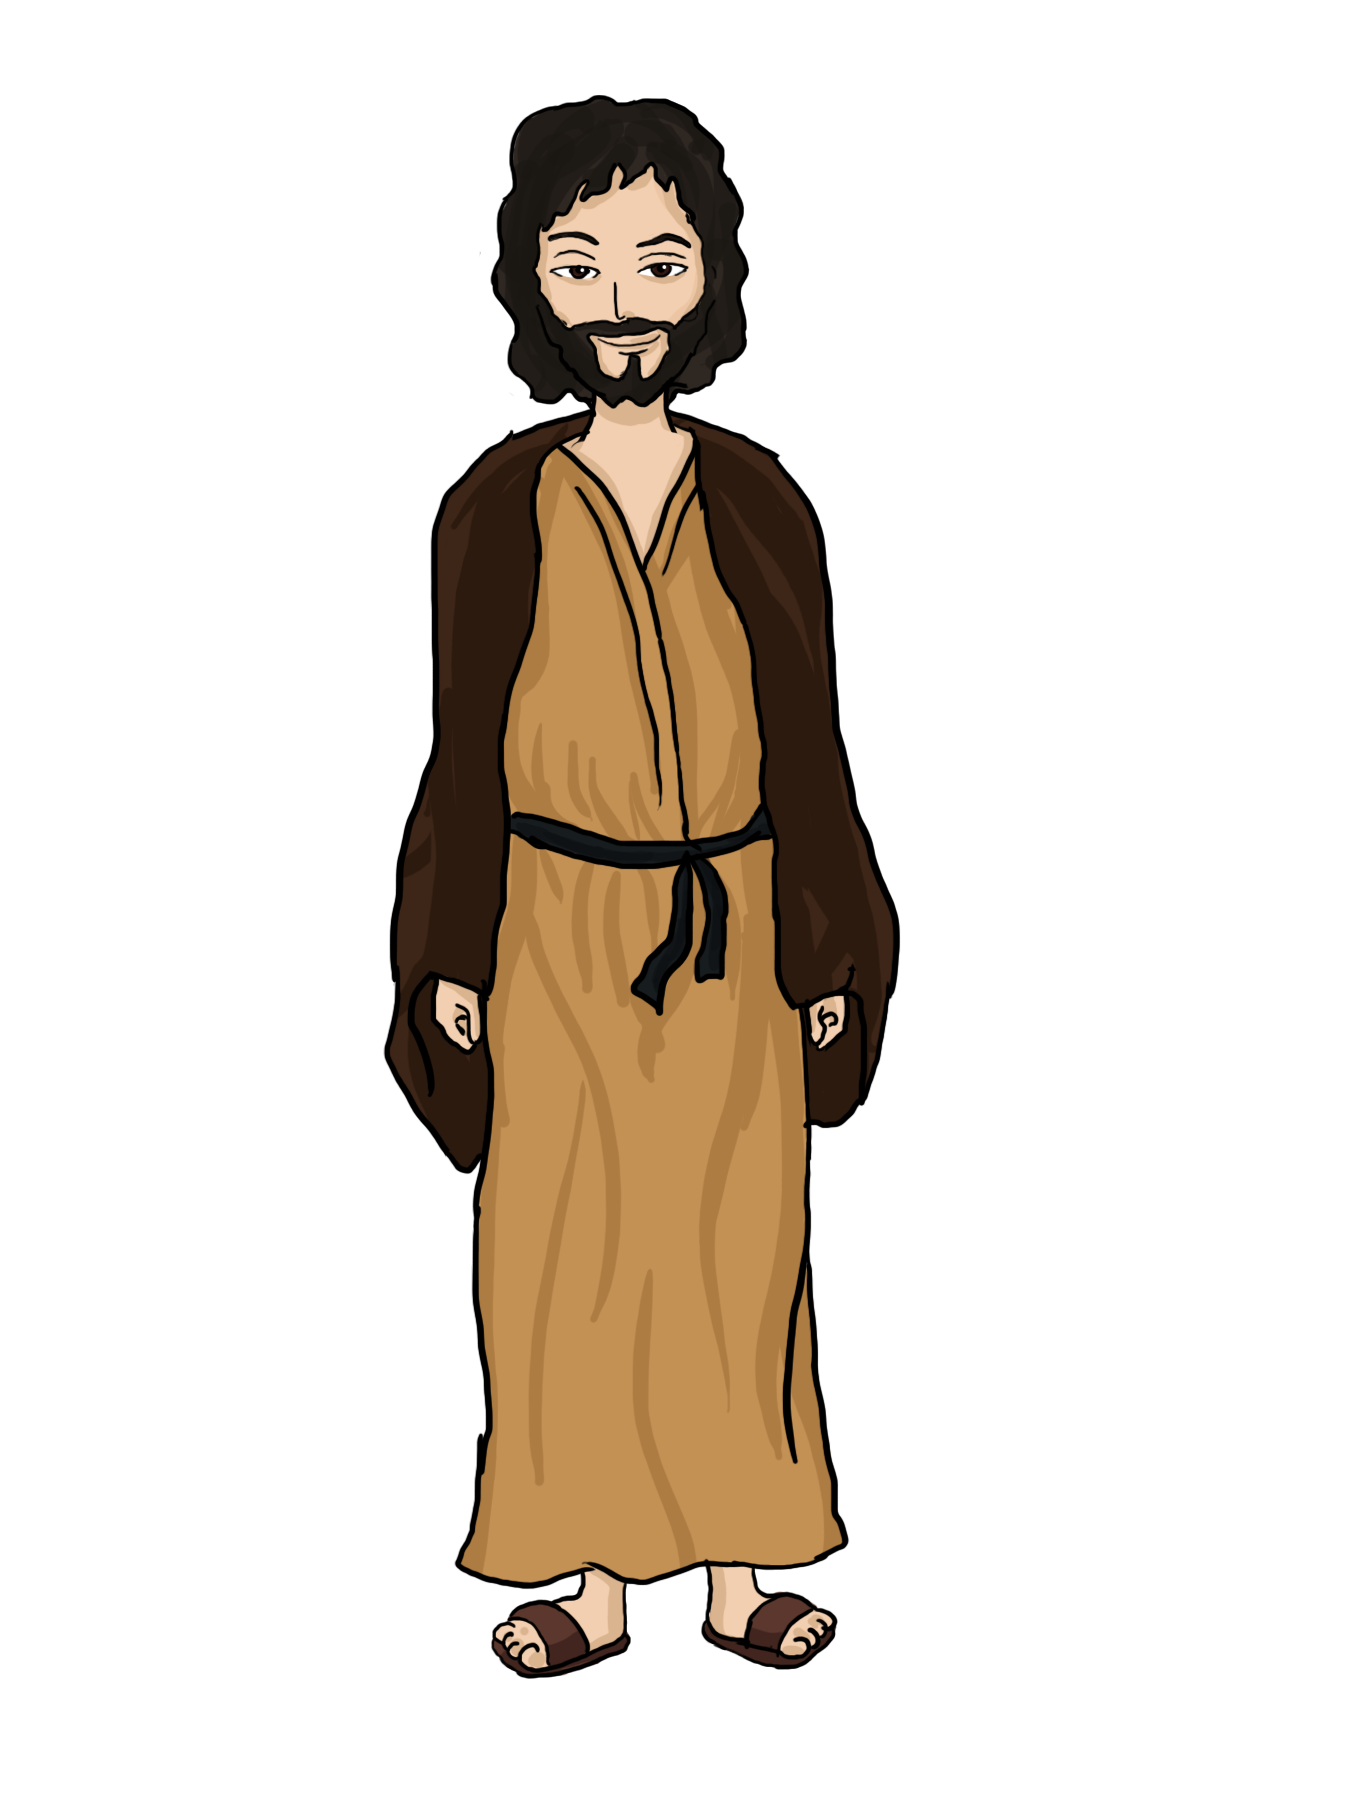 clipart cartoon jesus - photo #22